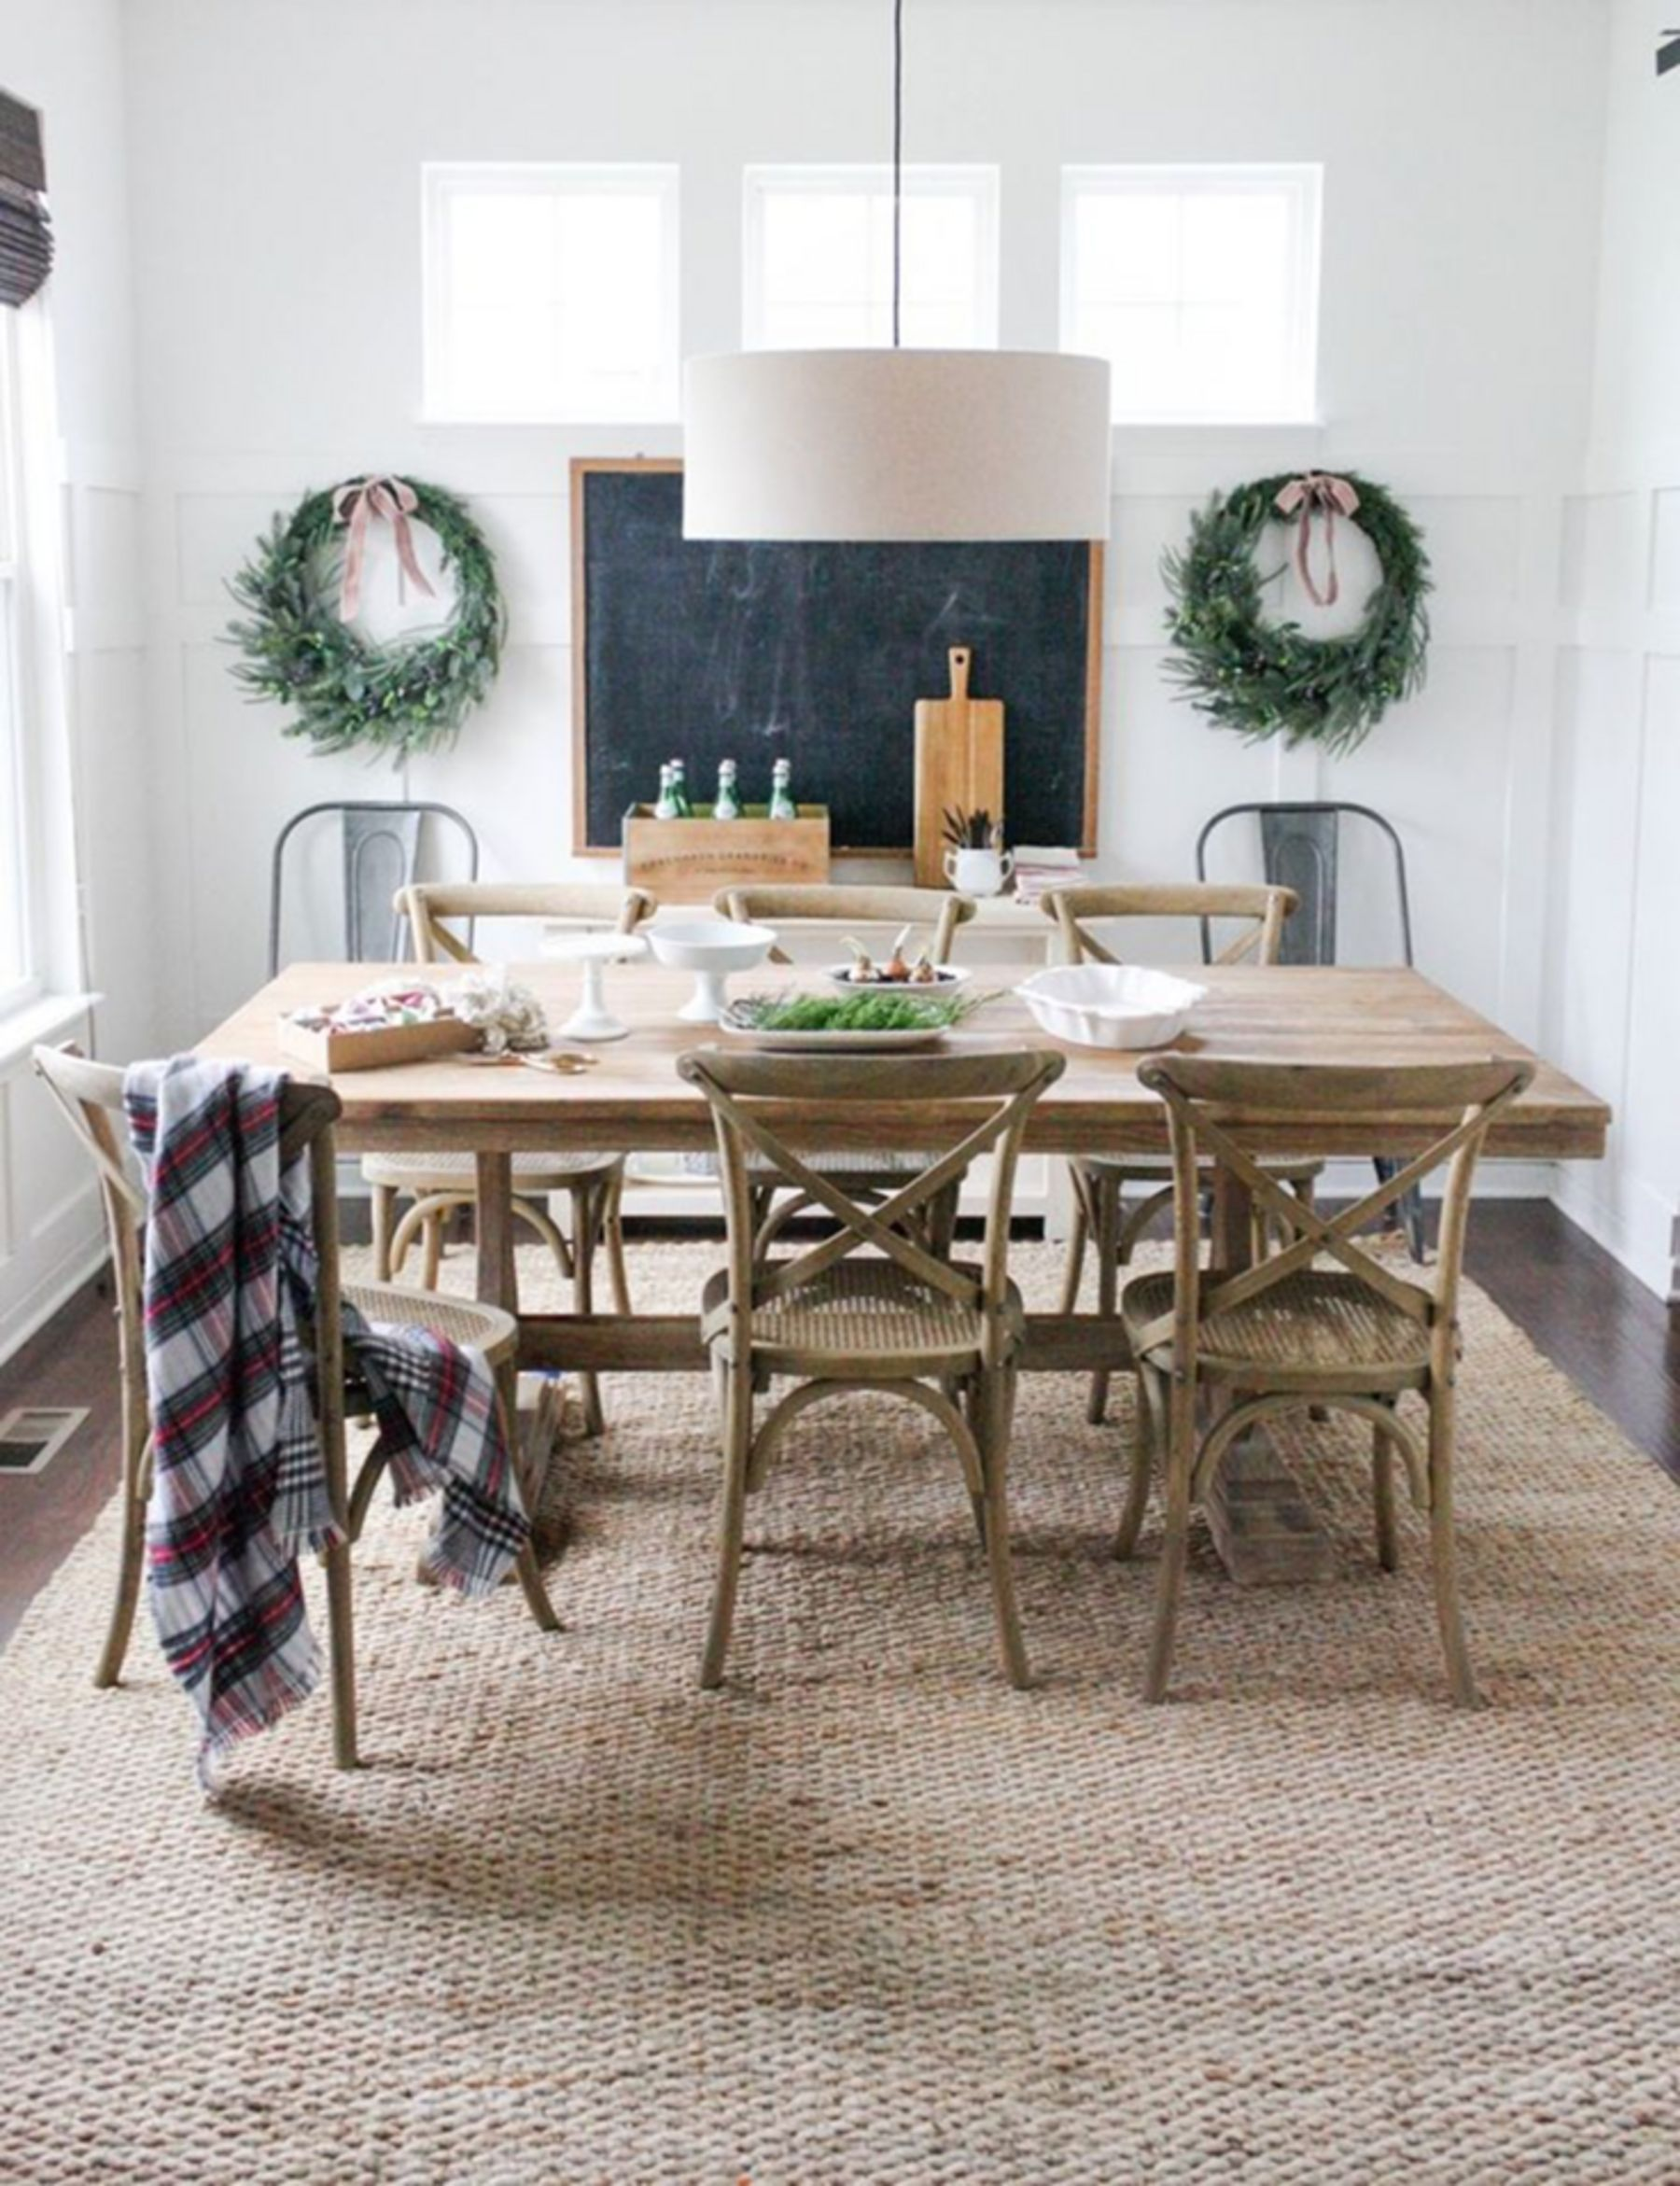 25 Lovely Modern Rugs Ideas For Your Dining Room Dining Room Rug